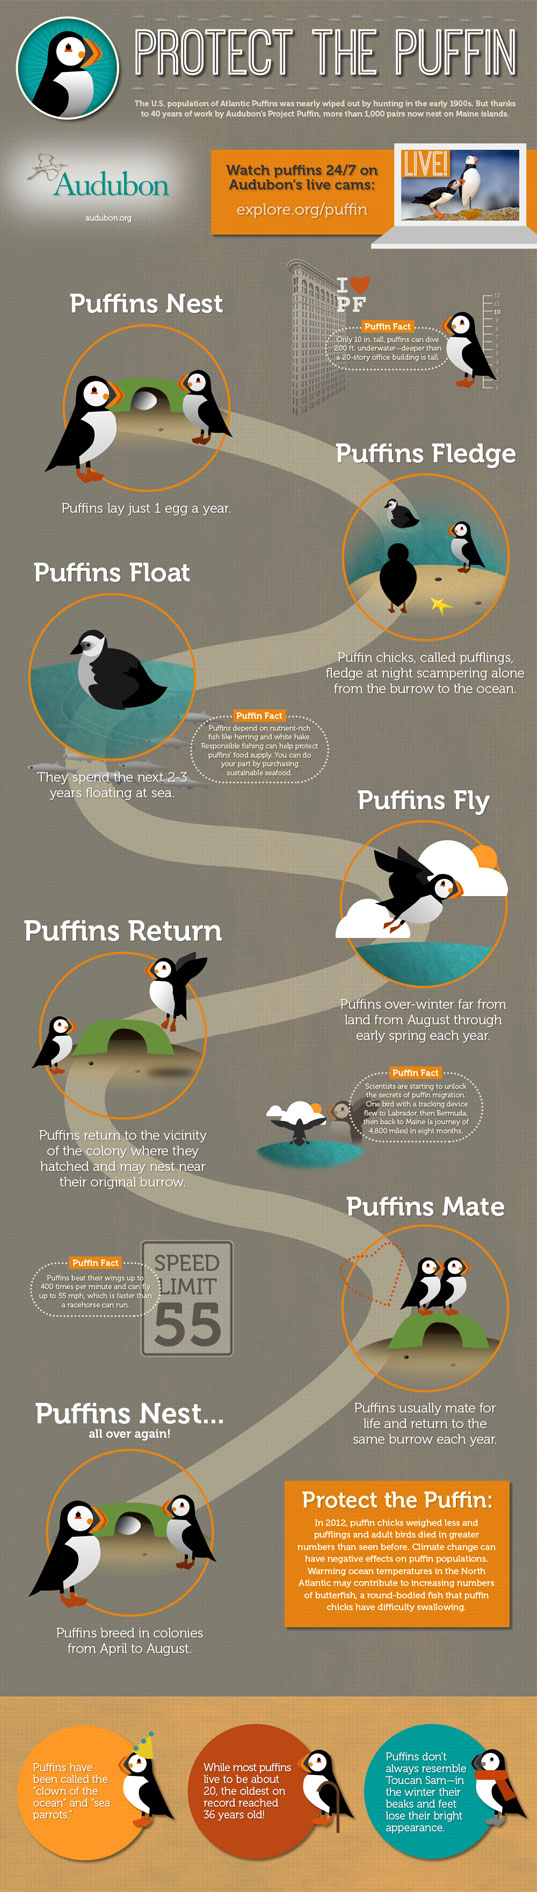 puffin, infographic, protect the puffin, national audubon society, endangered species, climate change, endangered birds